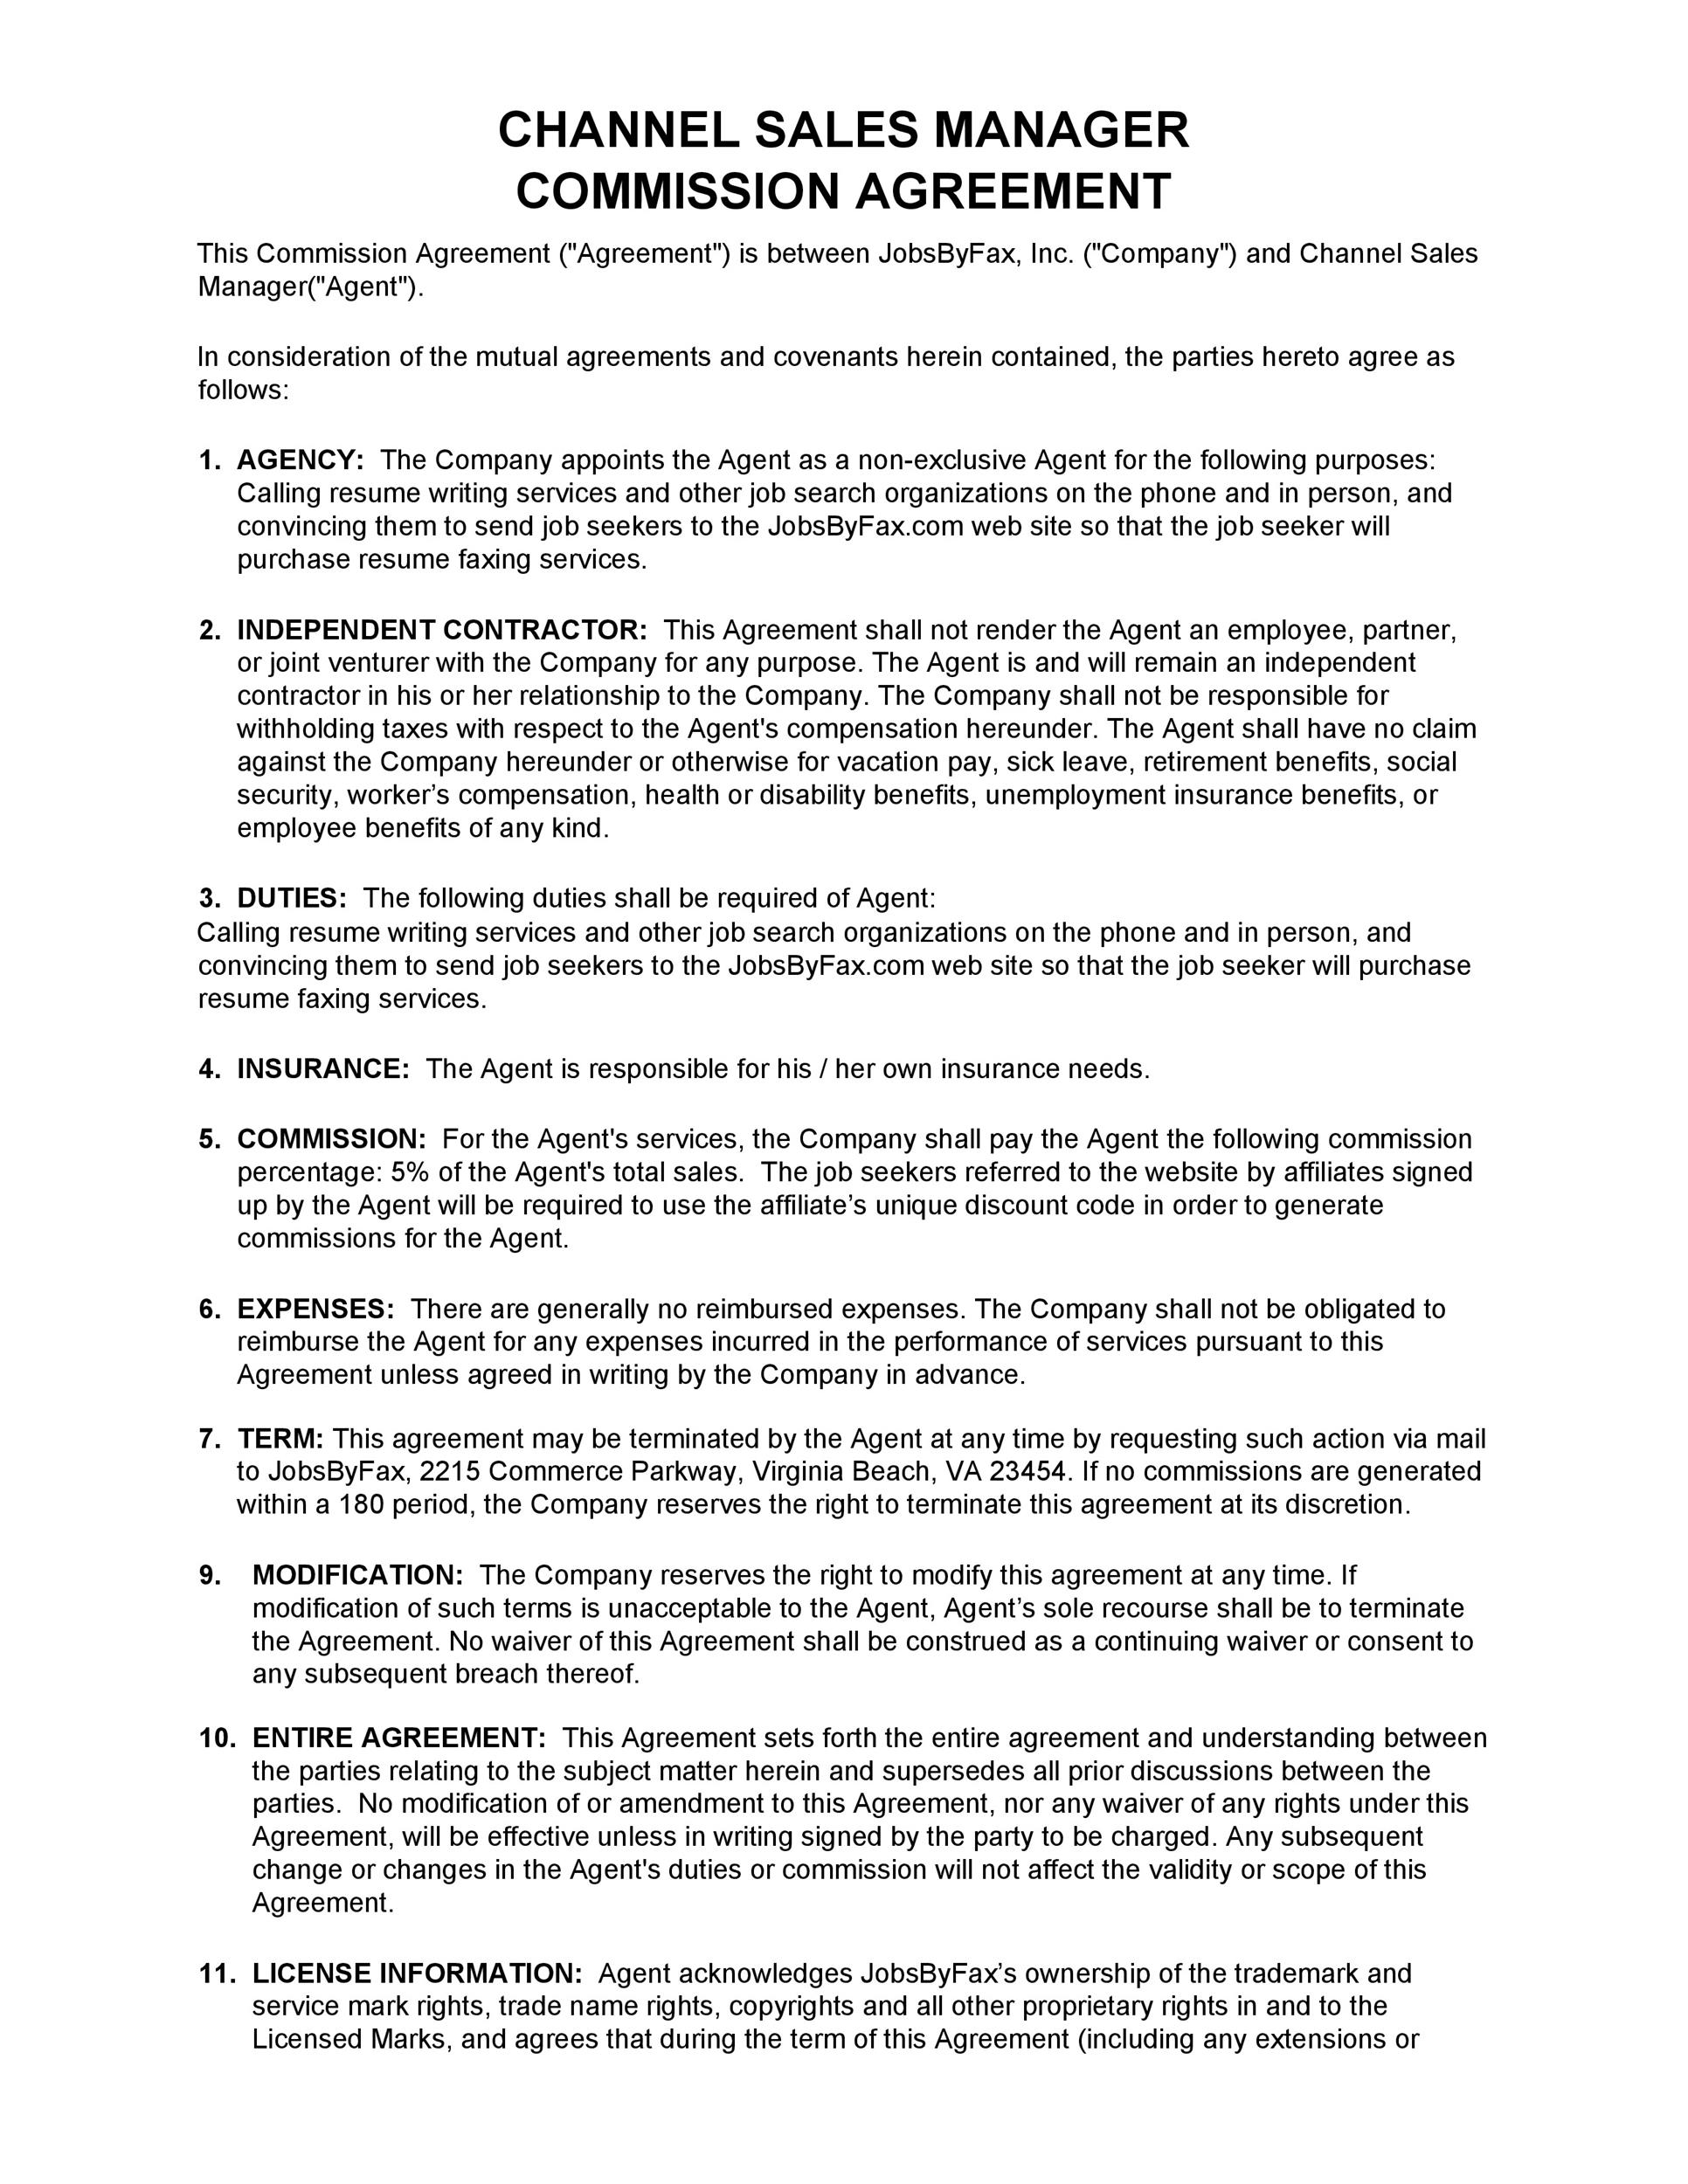 Free Commission Agreement Template 14